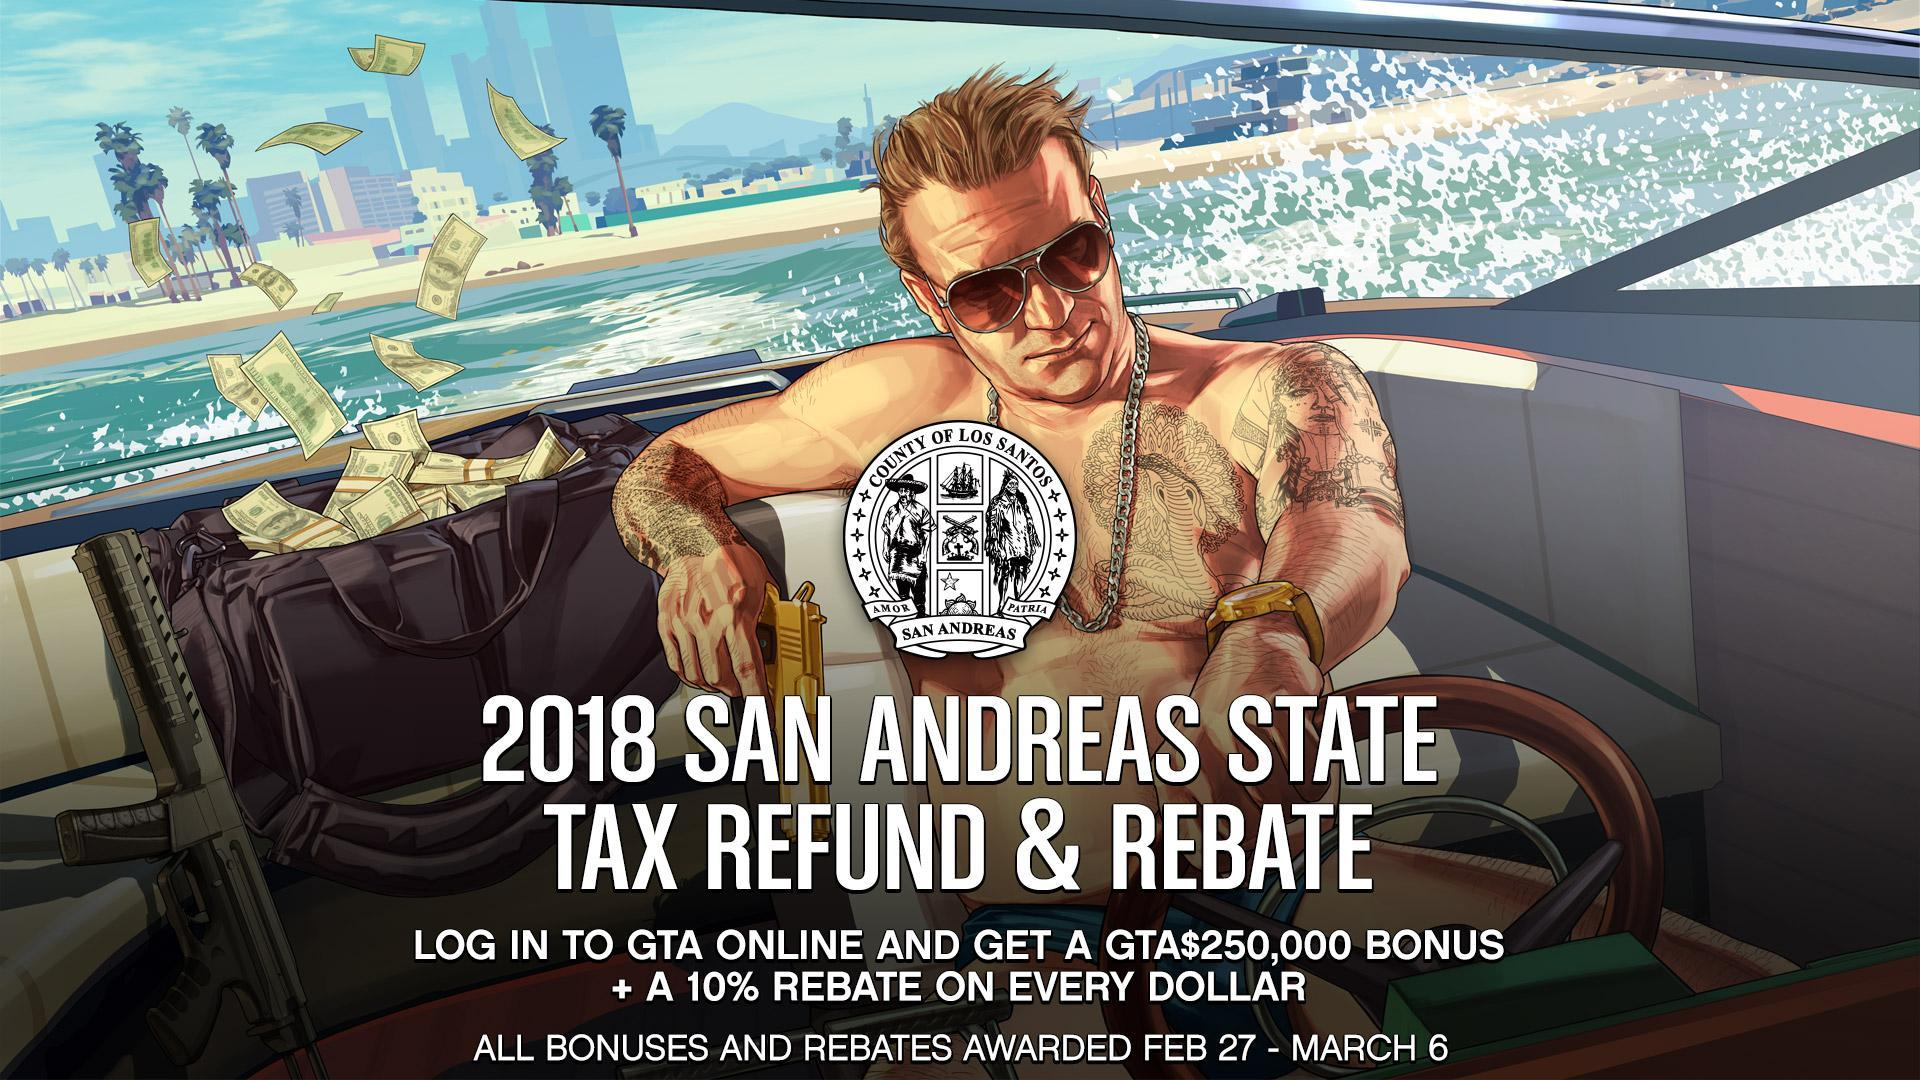 The 2018 San Andreas State Tax Refund and Rebate in GTA Online